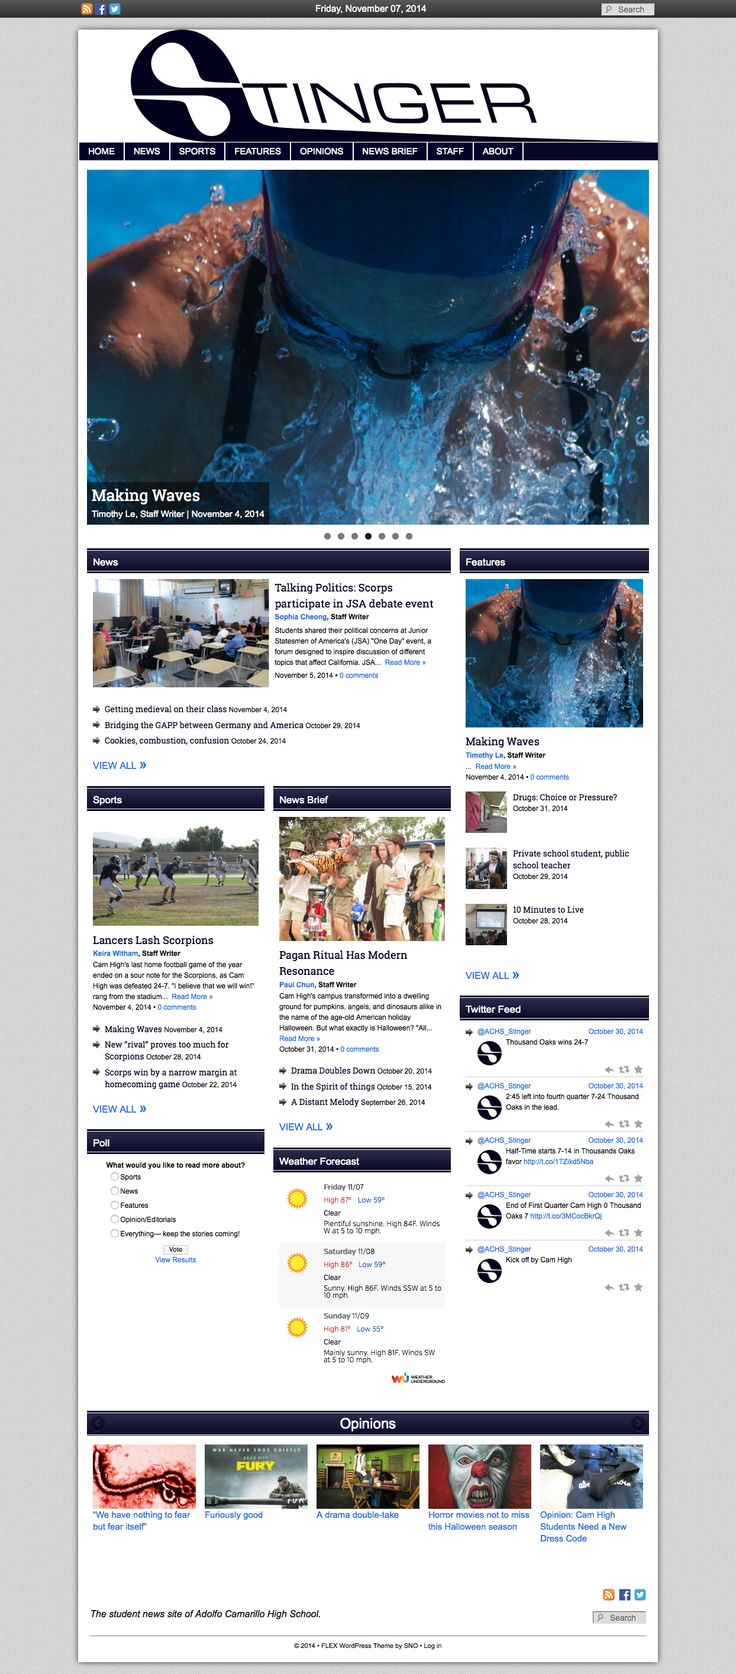 Placing Dynamic Widgets And Strong Photos On The Homepage Creates A Strong,  Dynamic News Site